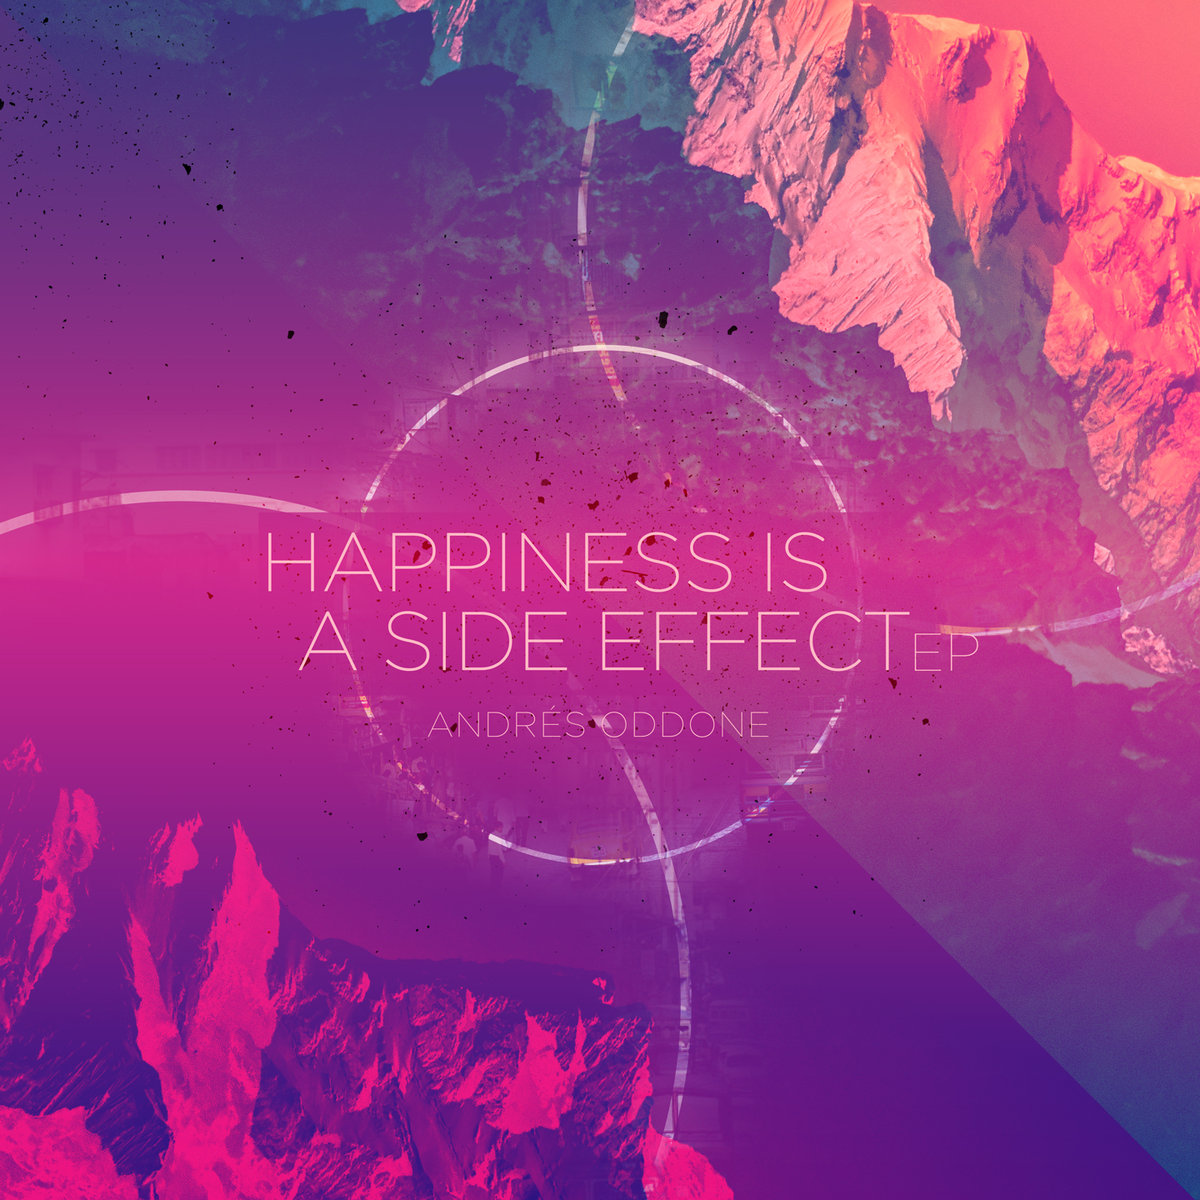 Andrés Oddone – Happiness is a side effect